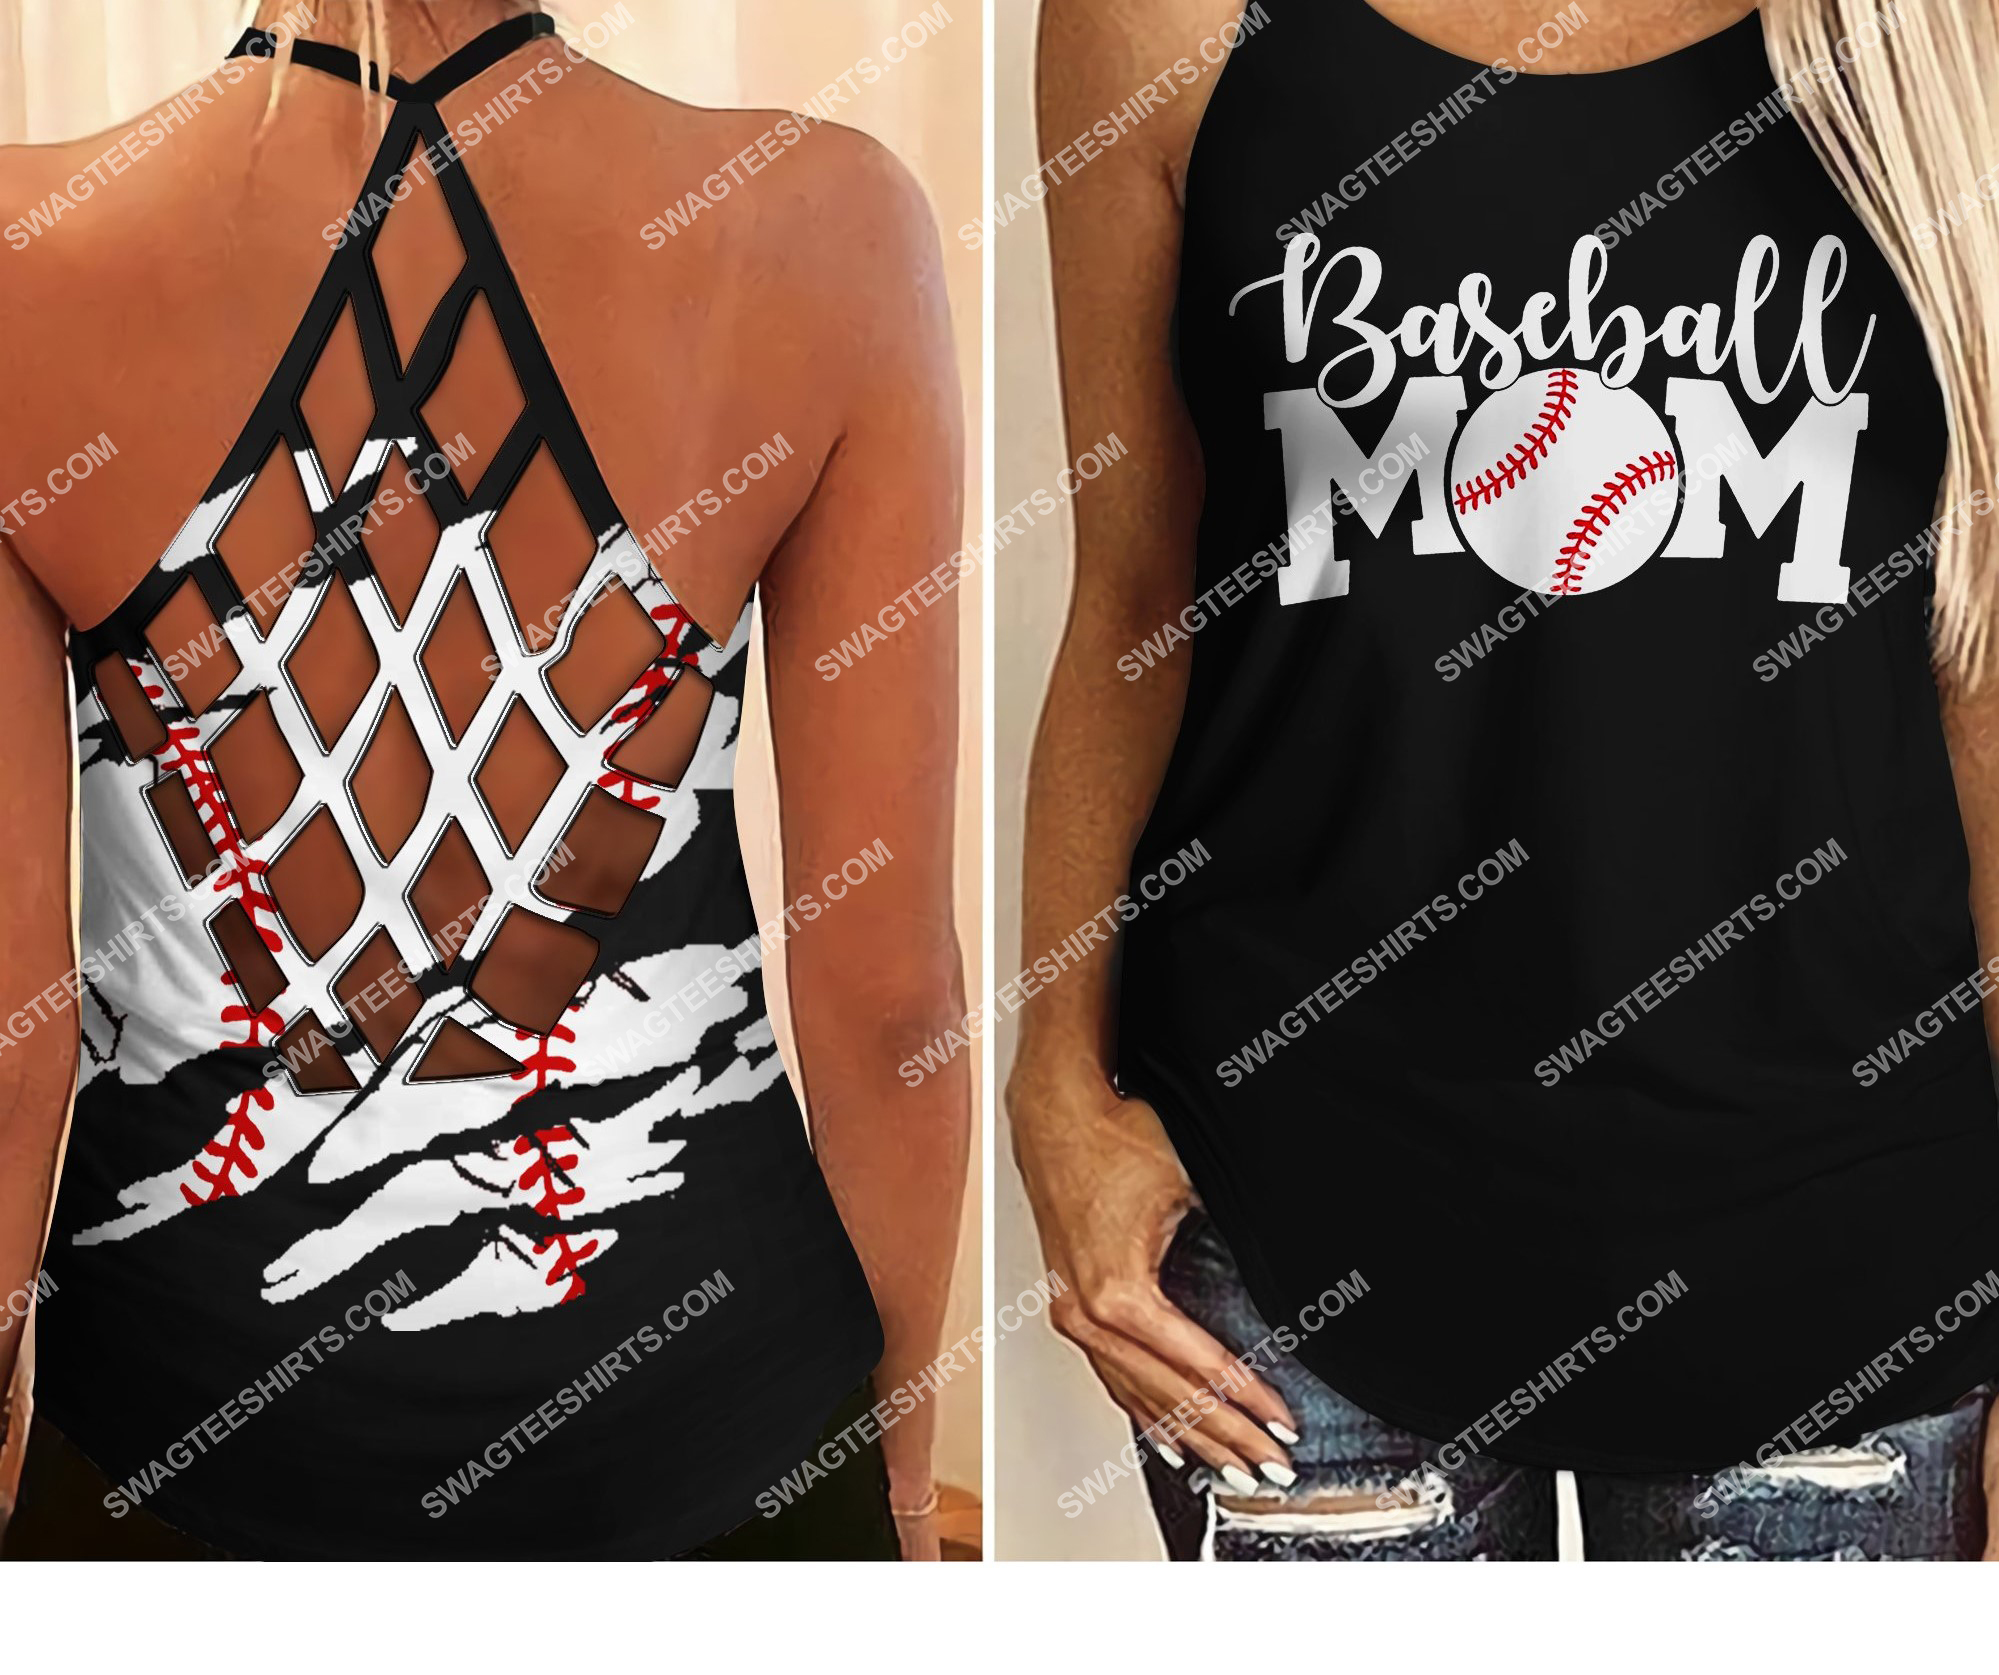 vintage baseball mom all over printed strappy back tank top 2